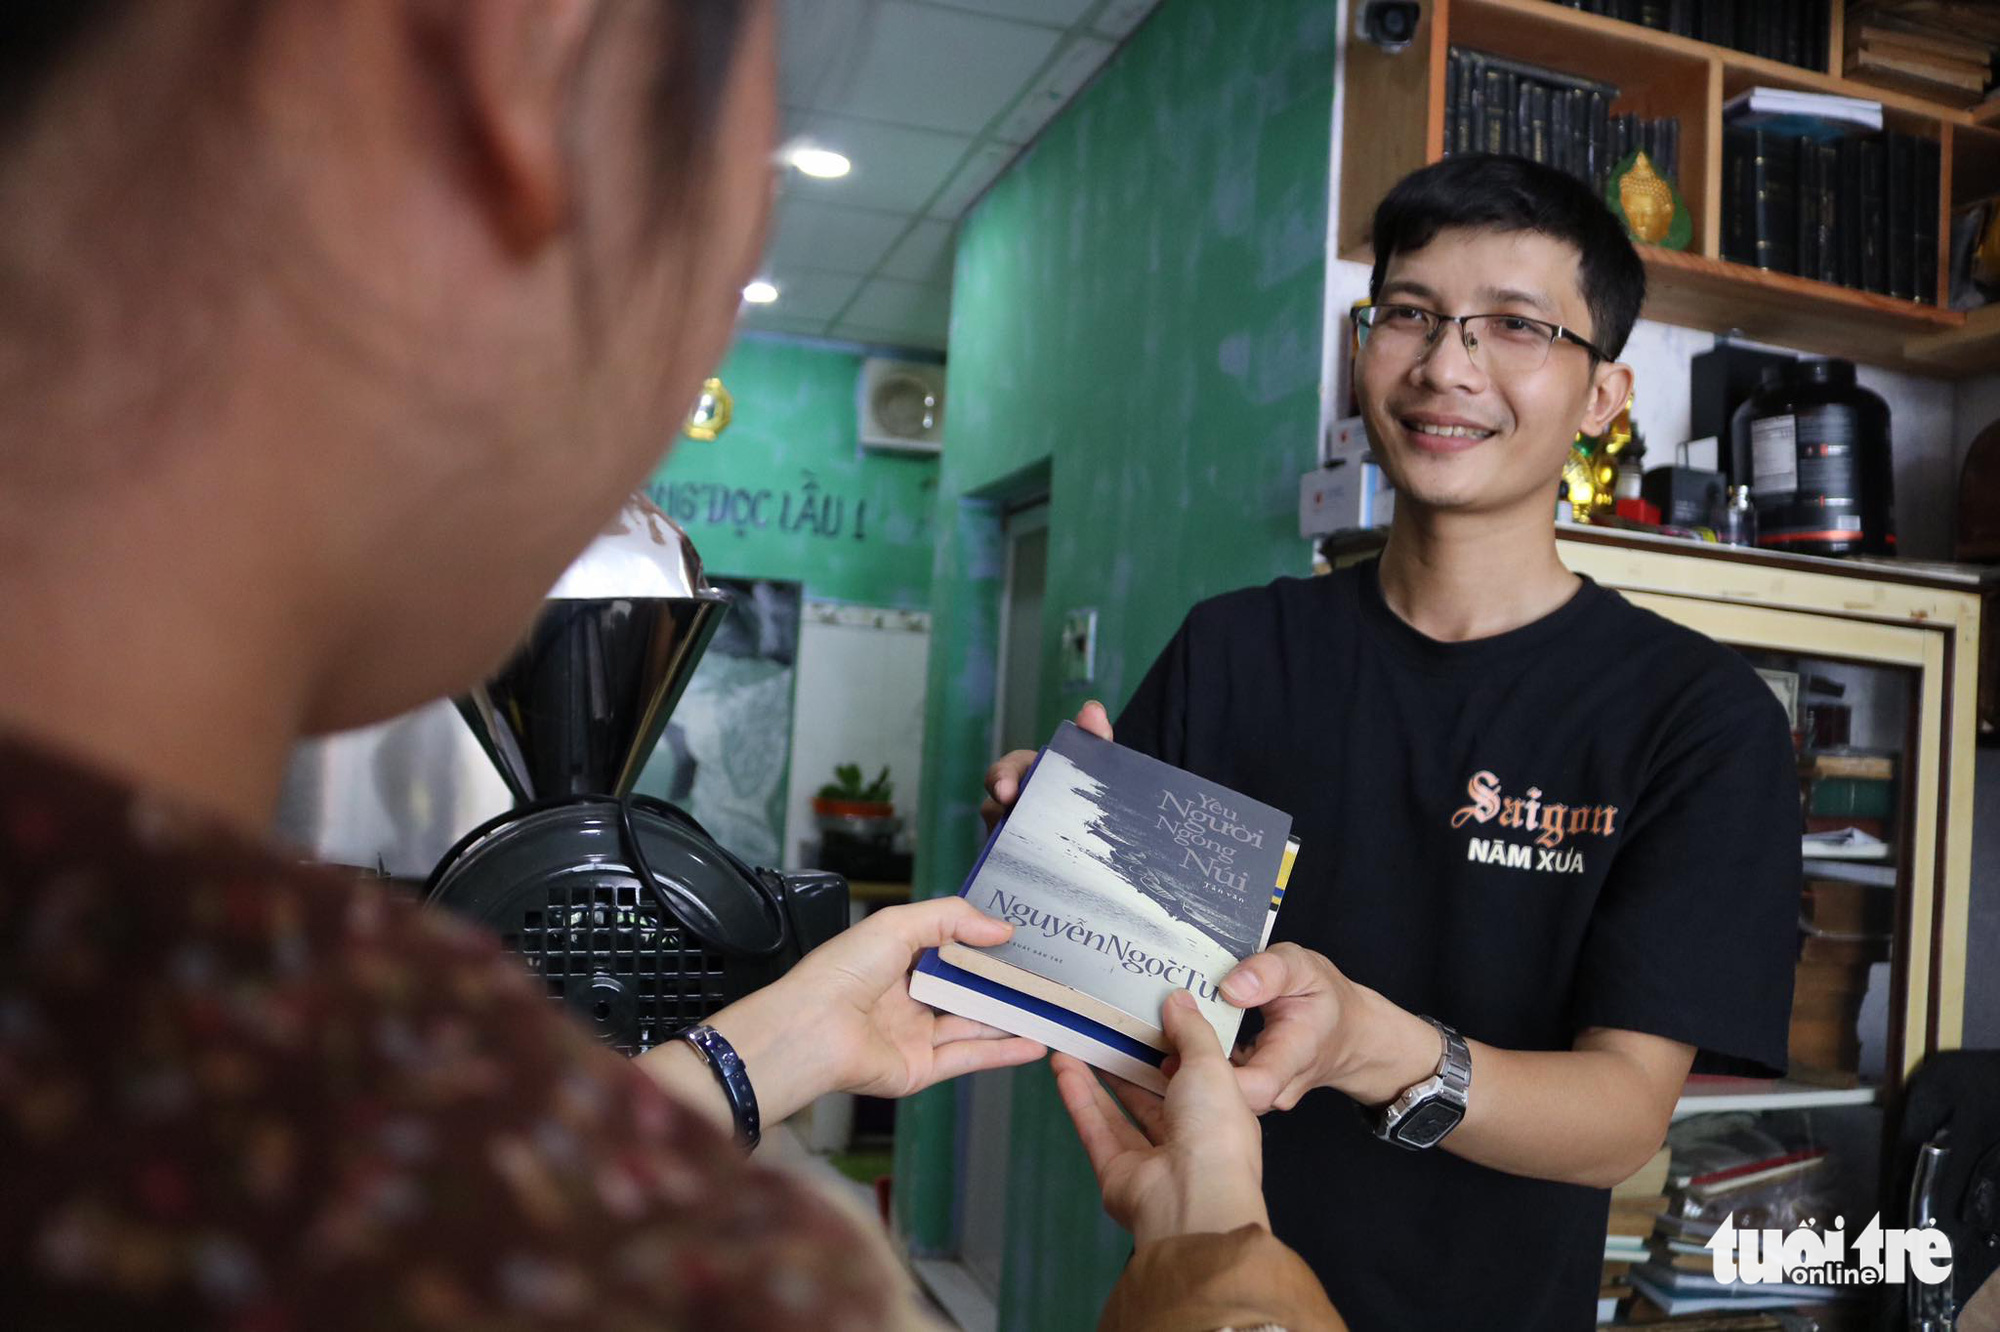 Le Ba Tan (right) accepts books from a visitor in return for a beverage he offered at a bookstore-café on Nguyen Khac Nhu Street in Ho Chi Minh City, Vietnam. Photo: Ngoc Phuong / Tuoi Tre